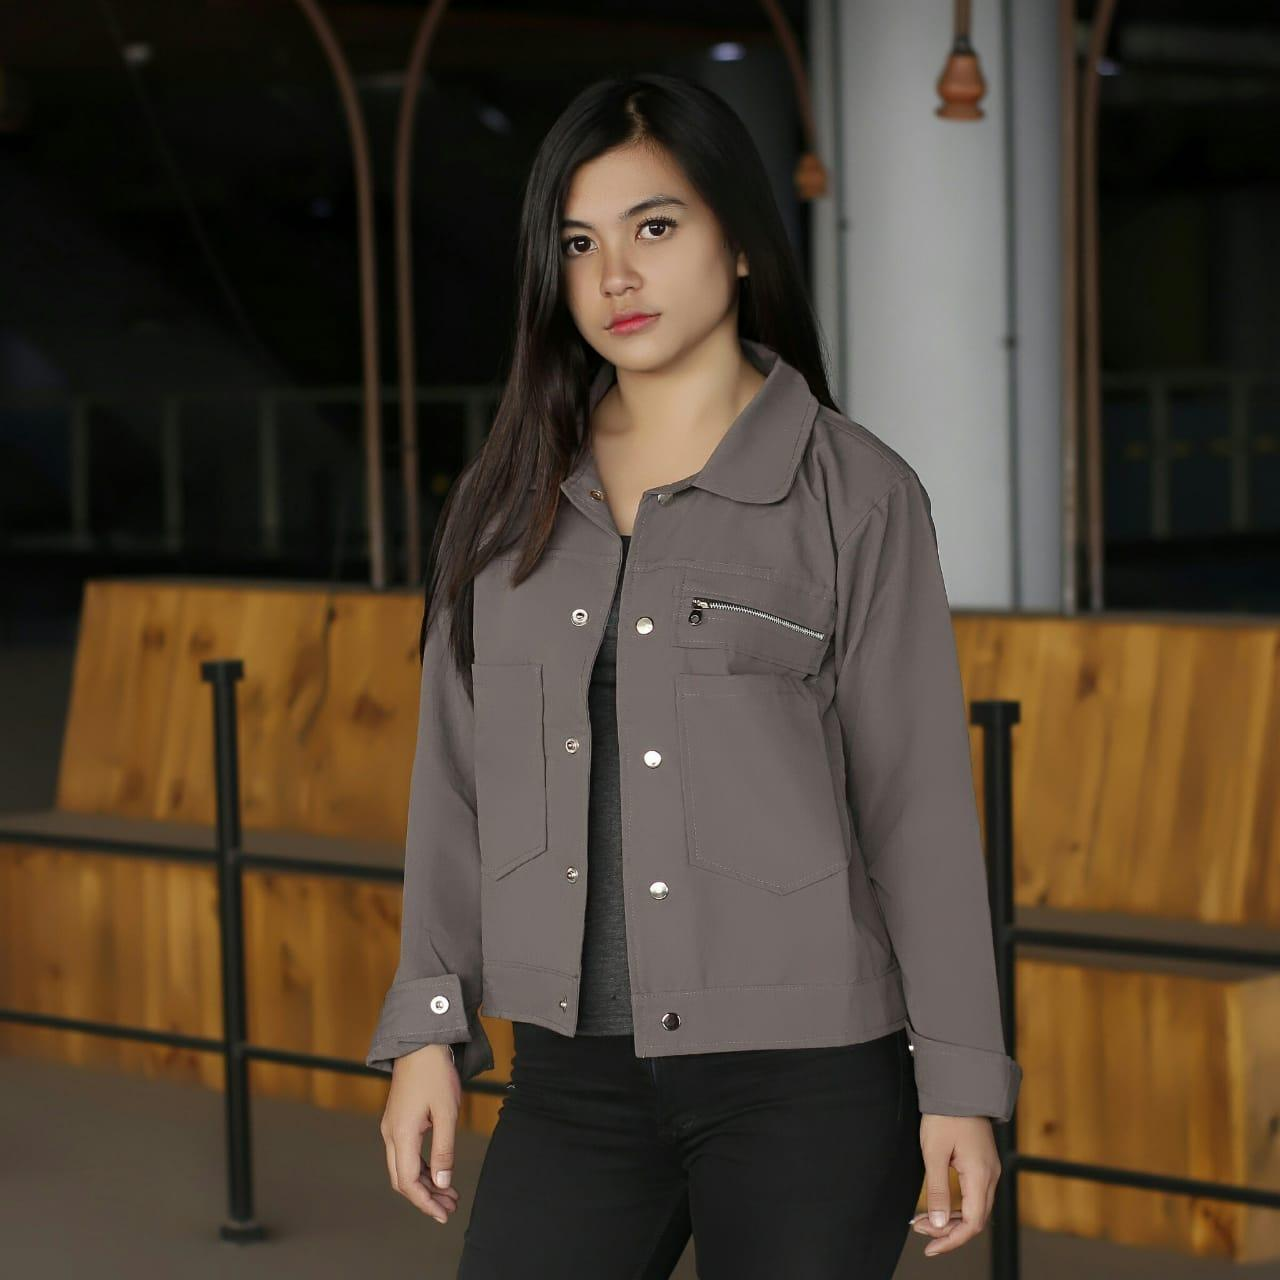 POLAN JAKET - FASHION JAKET WANITA - POCKET ZIPPY 189bfbc500